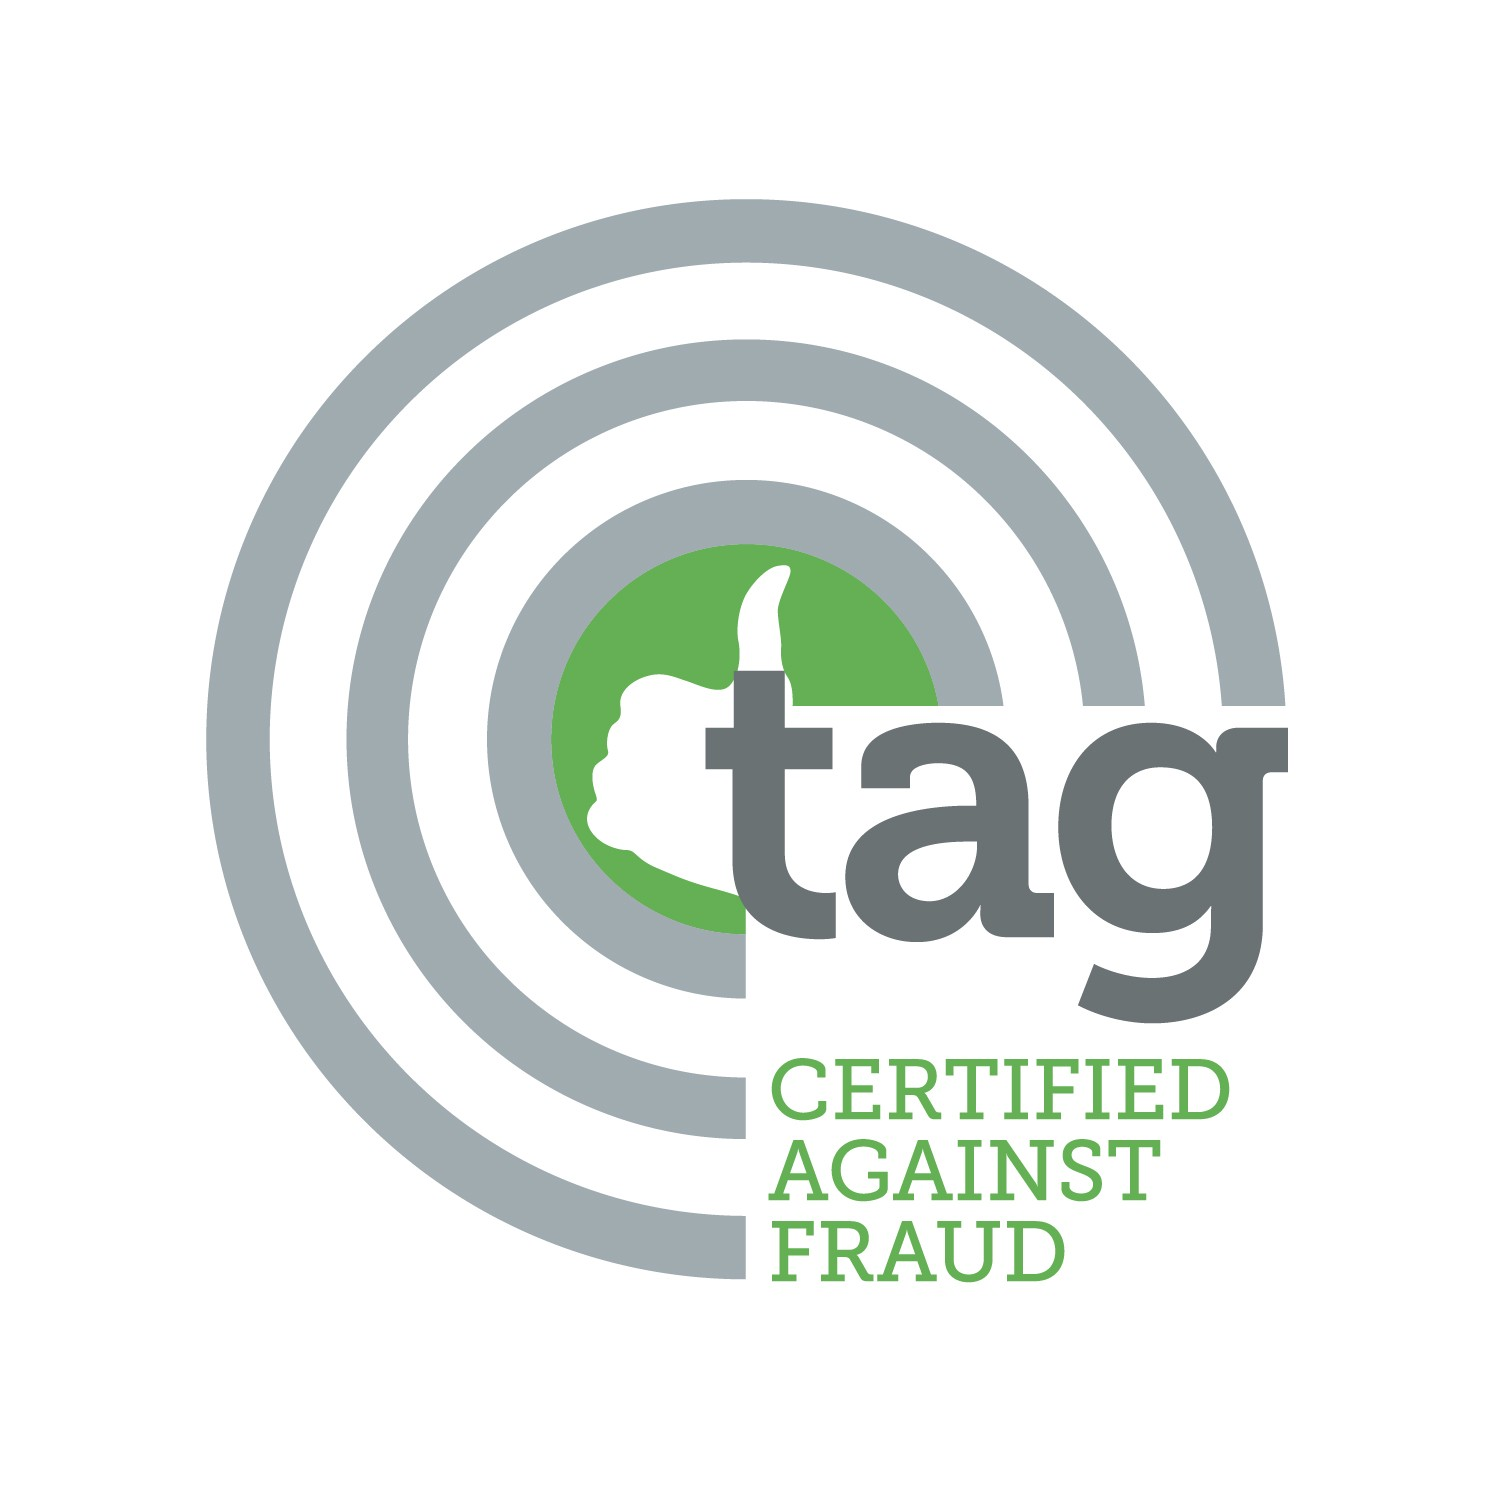 Beachfront Awarded Recertification for TAG's Certified Against Fraud Program